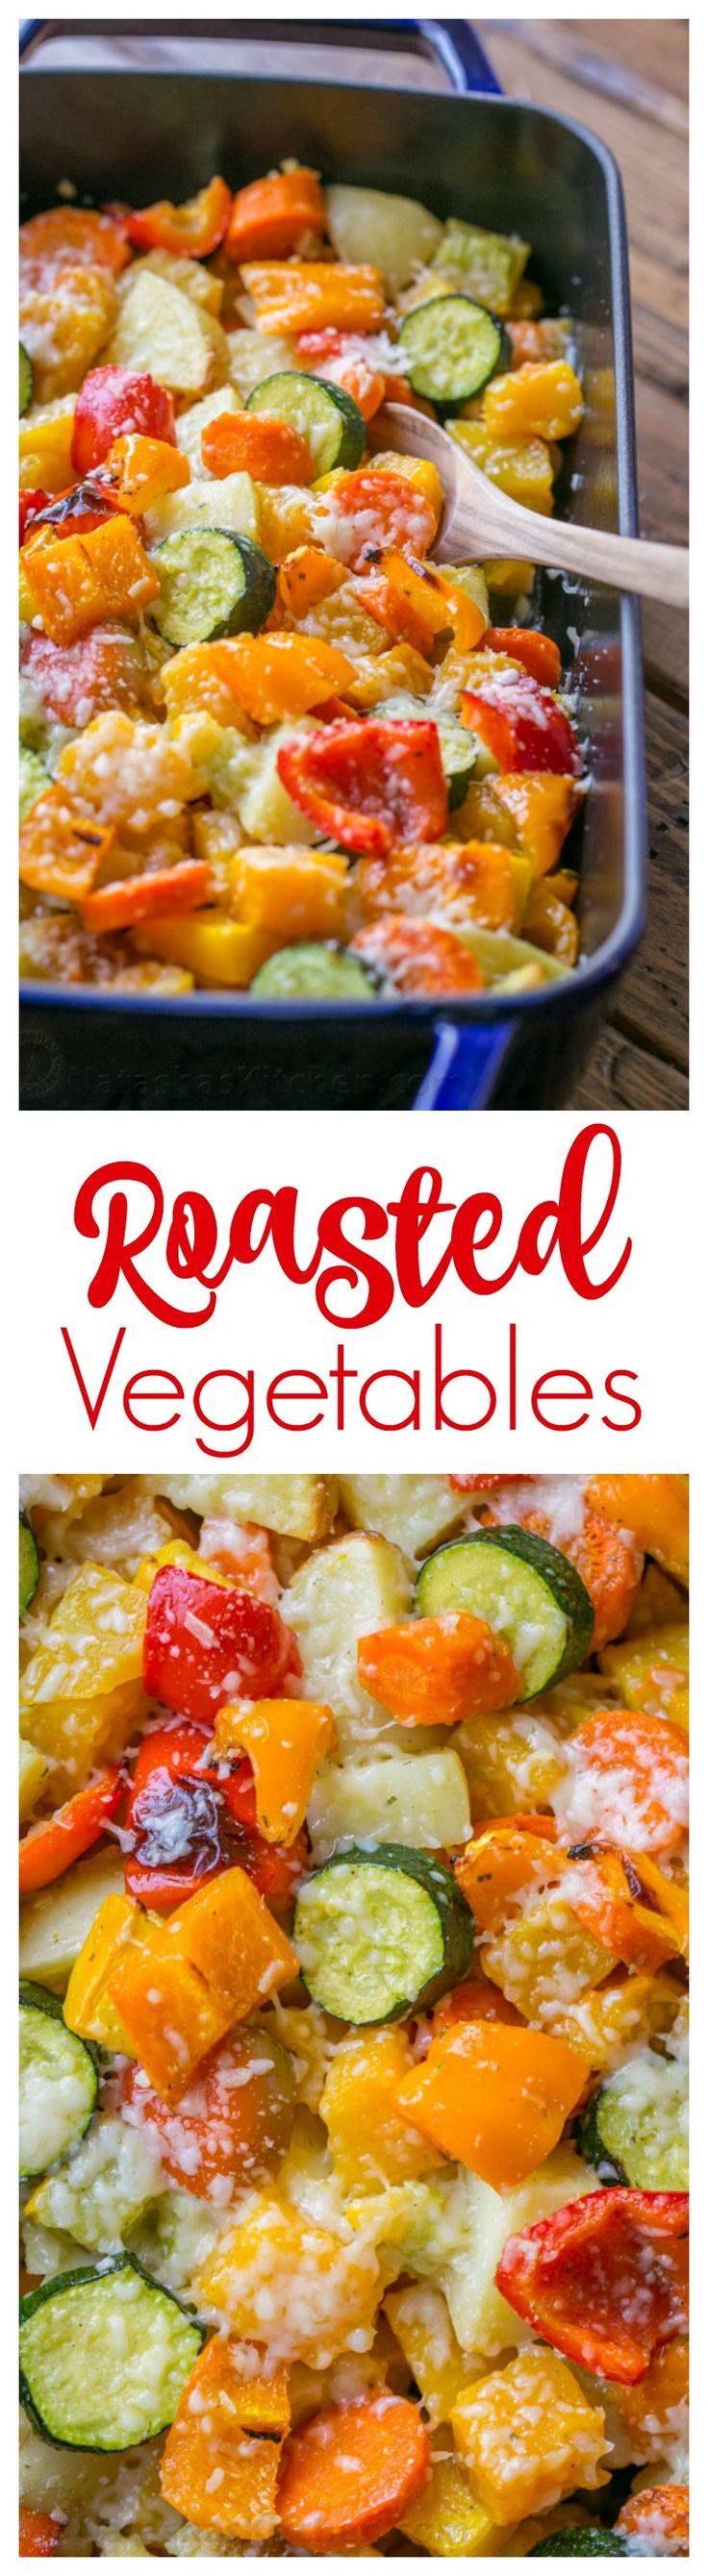 Roasted Veggie Mix | butternut squash, potatoes, zucchini, carrots and bell peppers.